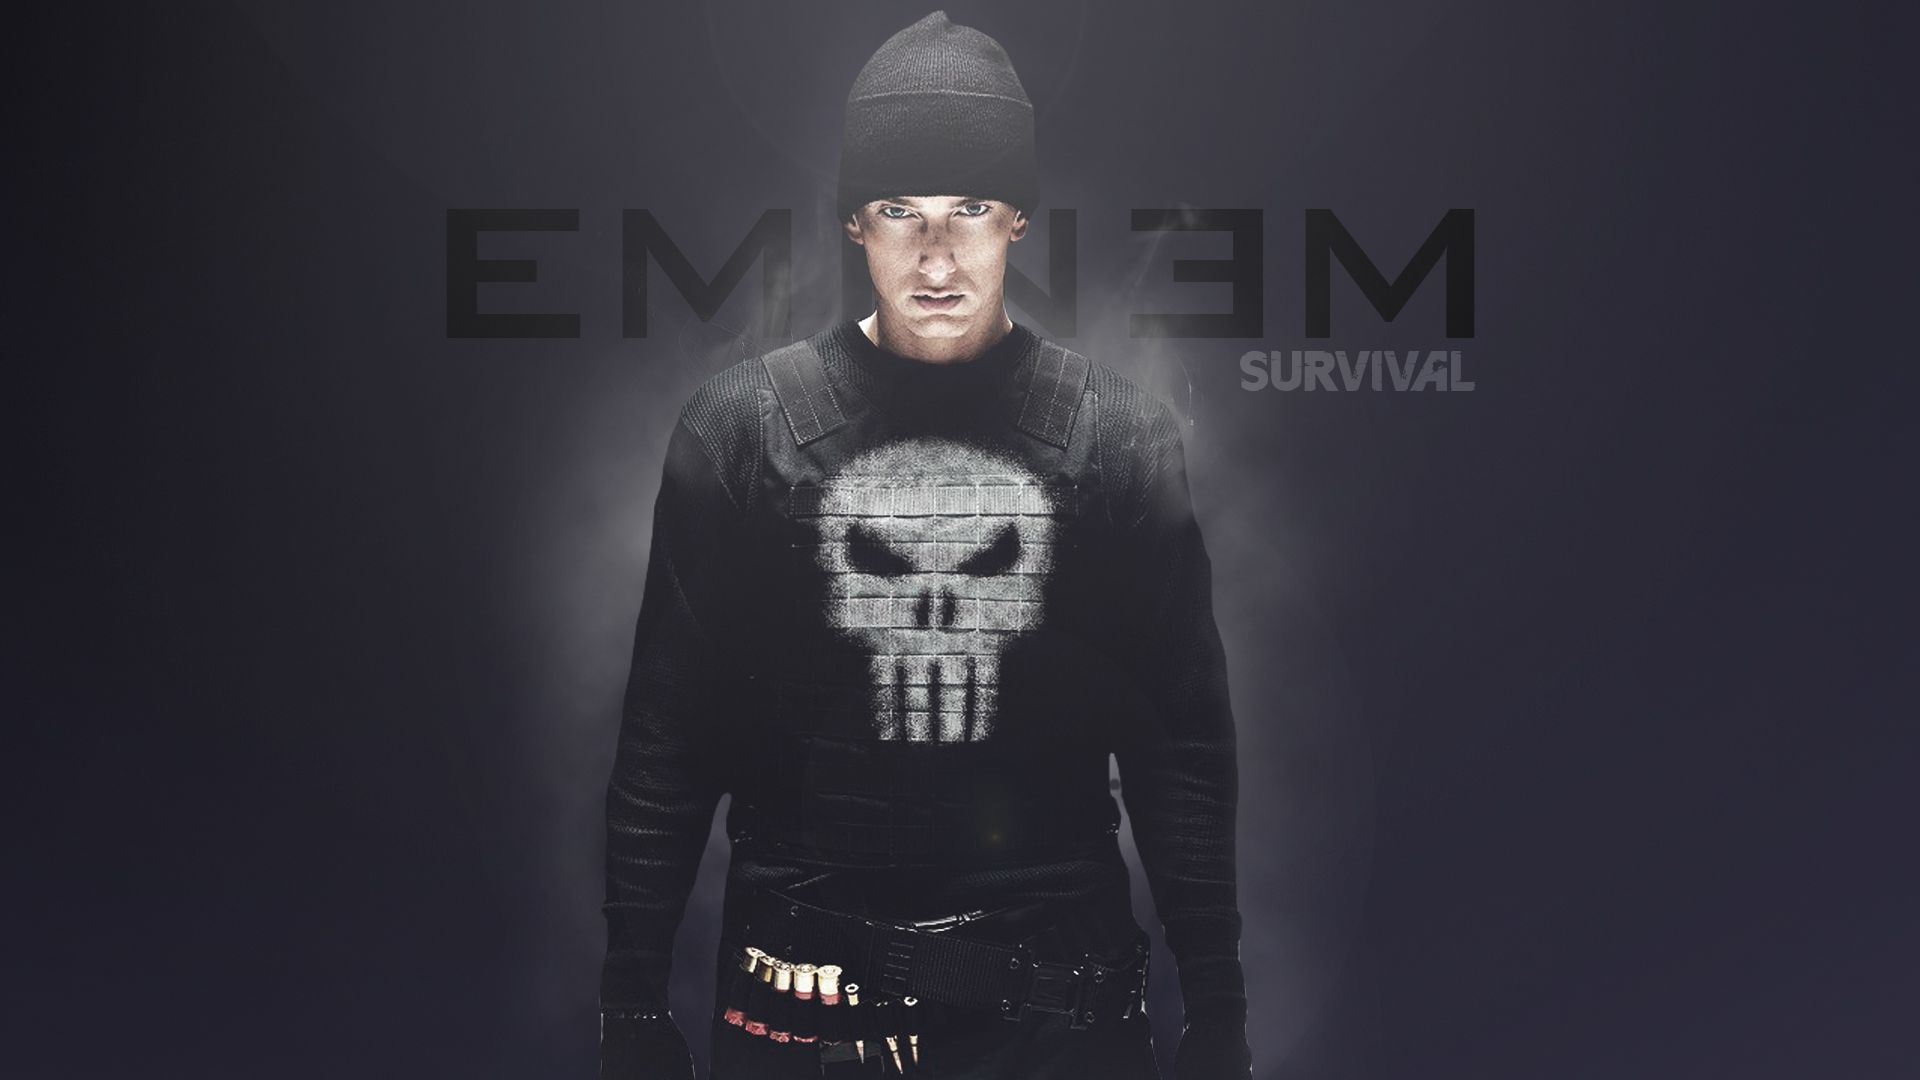 Slim Shady Wallpapers   Top Slim Shady Backgrounds 1920x1080